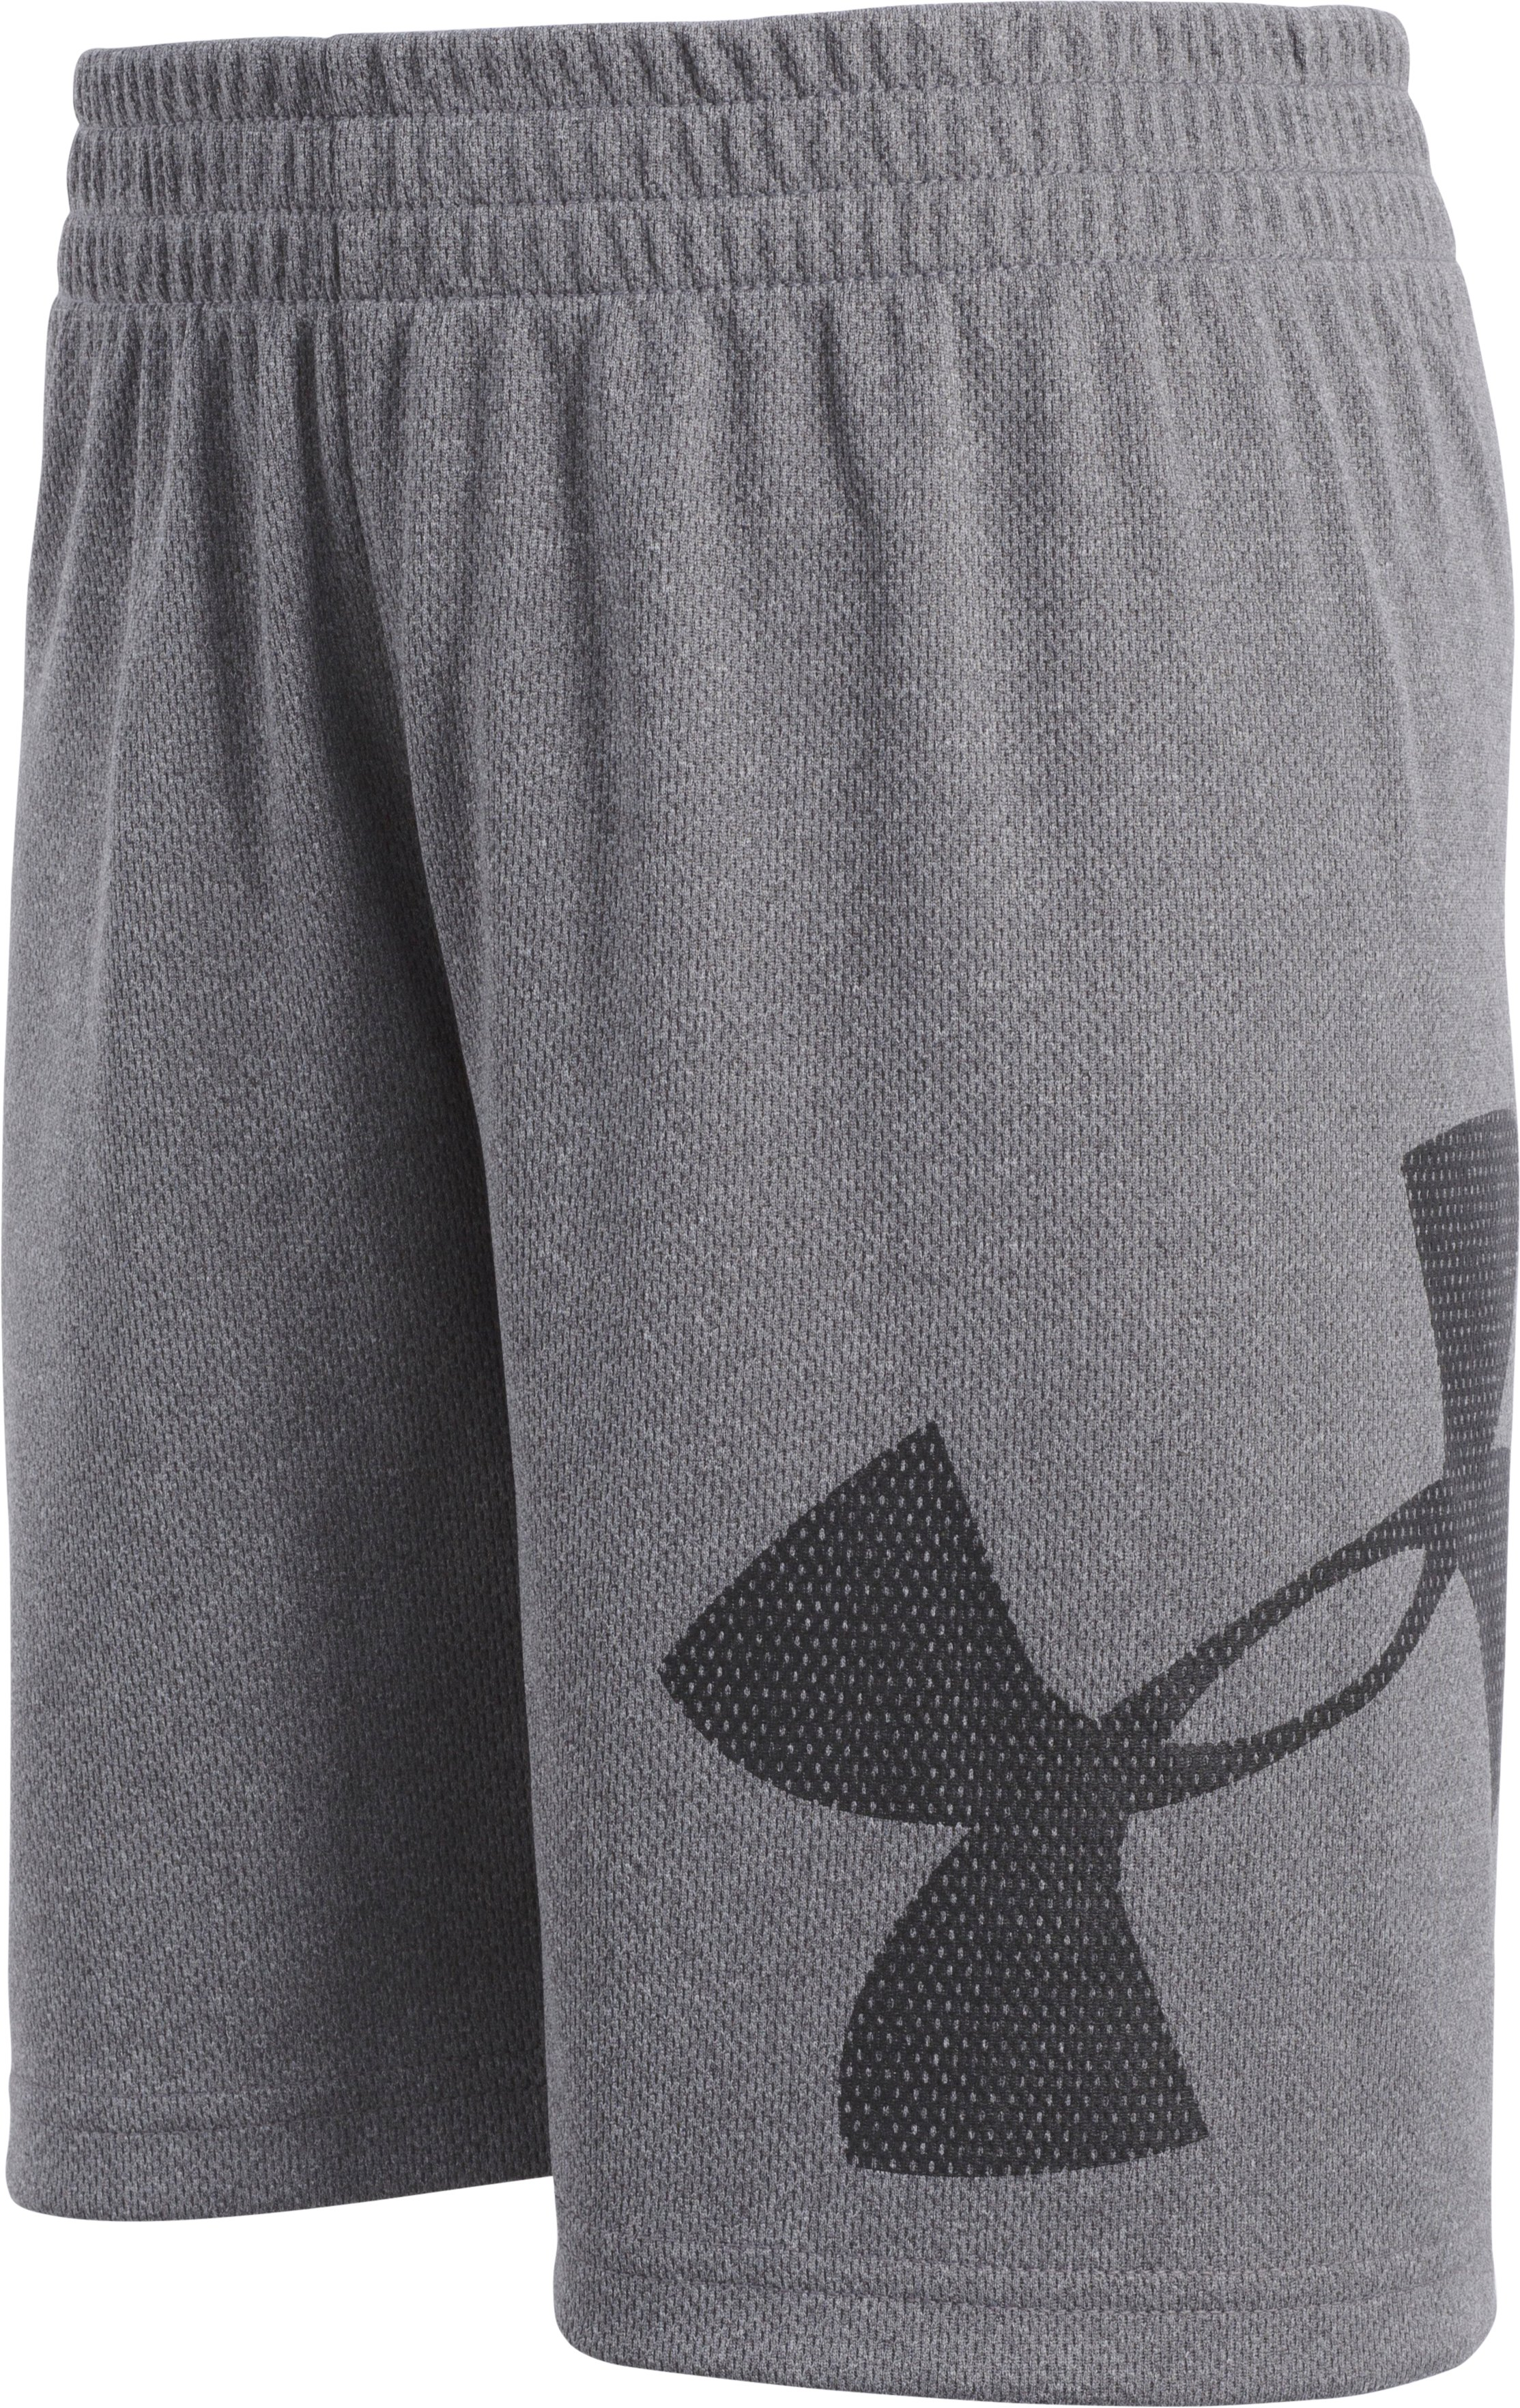 Boys' Pre-School UA Zoom Striker Shorts, Charcoal Medium Heather, Laydown